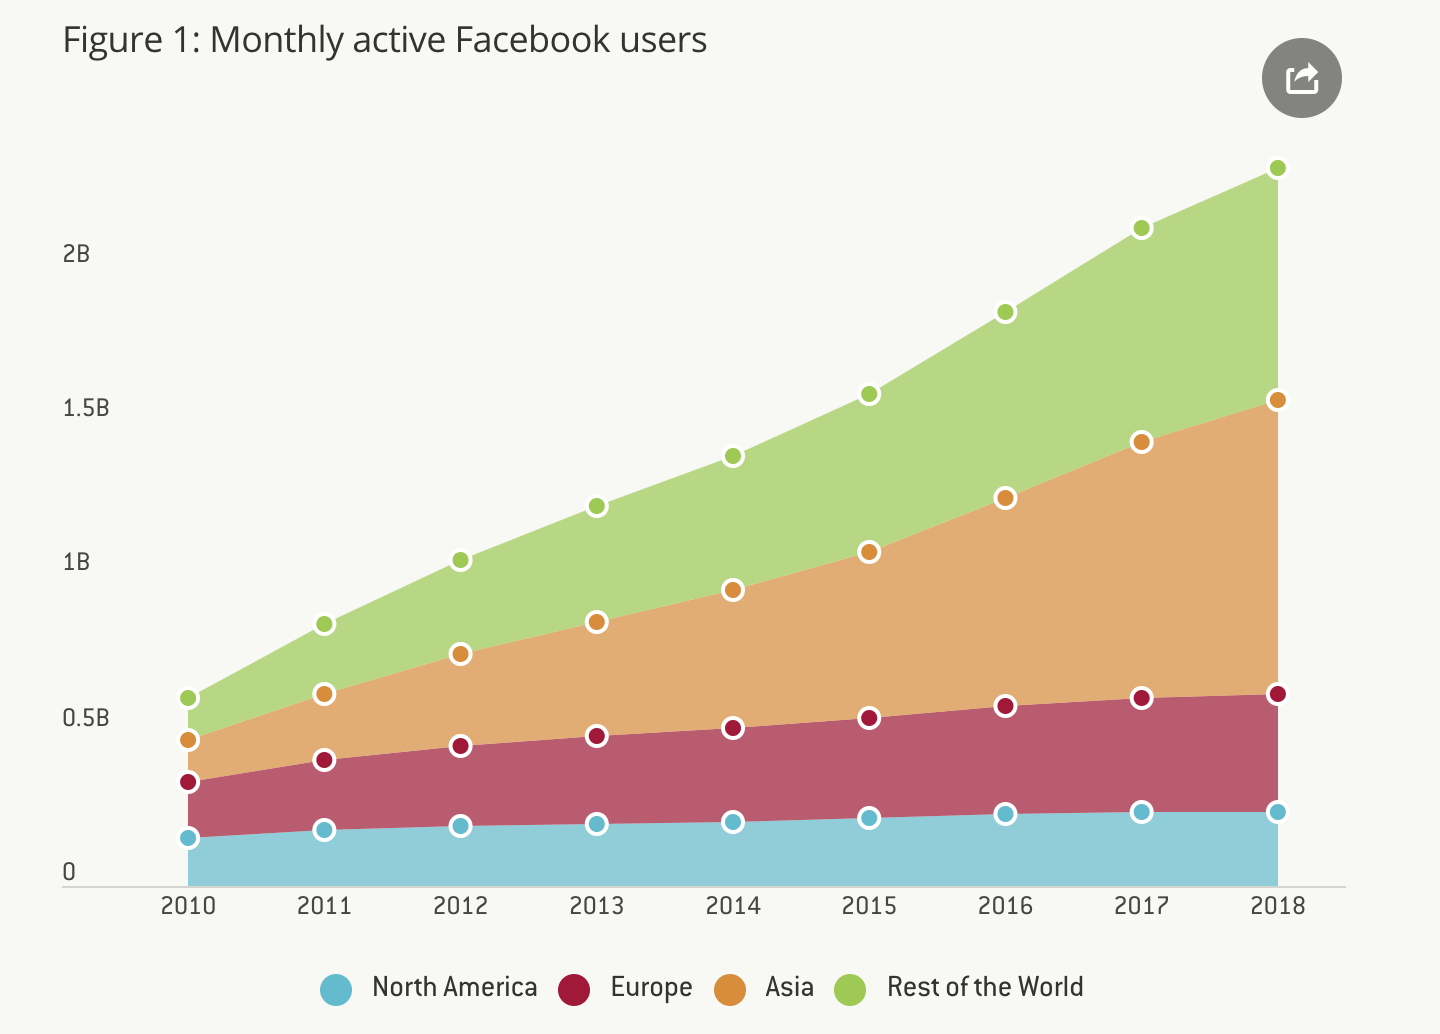 Figure 1: Monthly active Facebook users, Source: Bloomberg